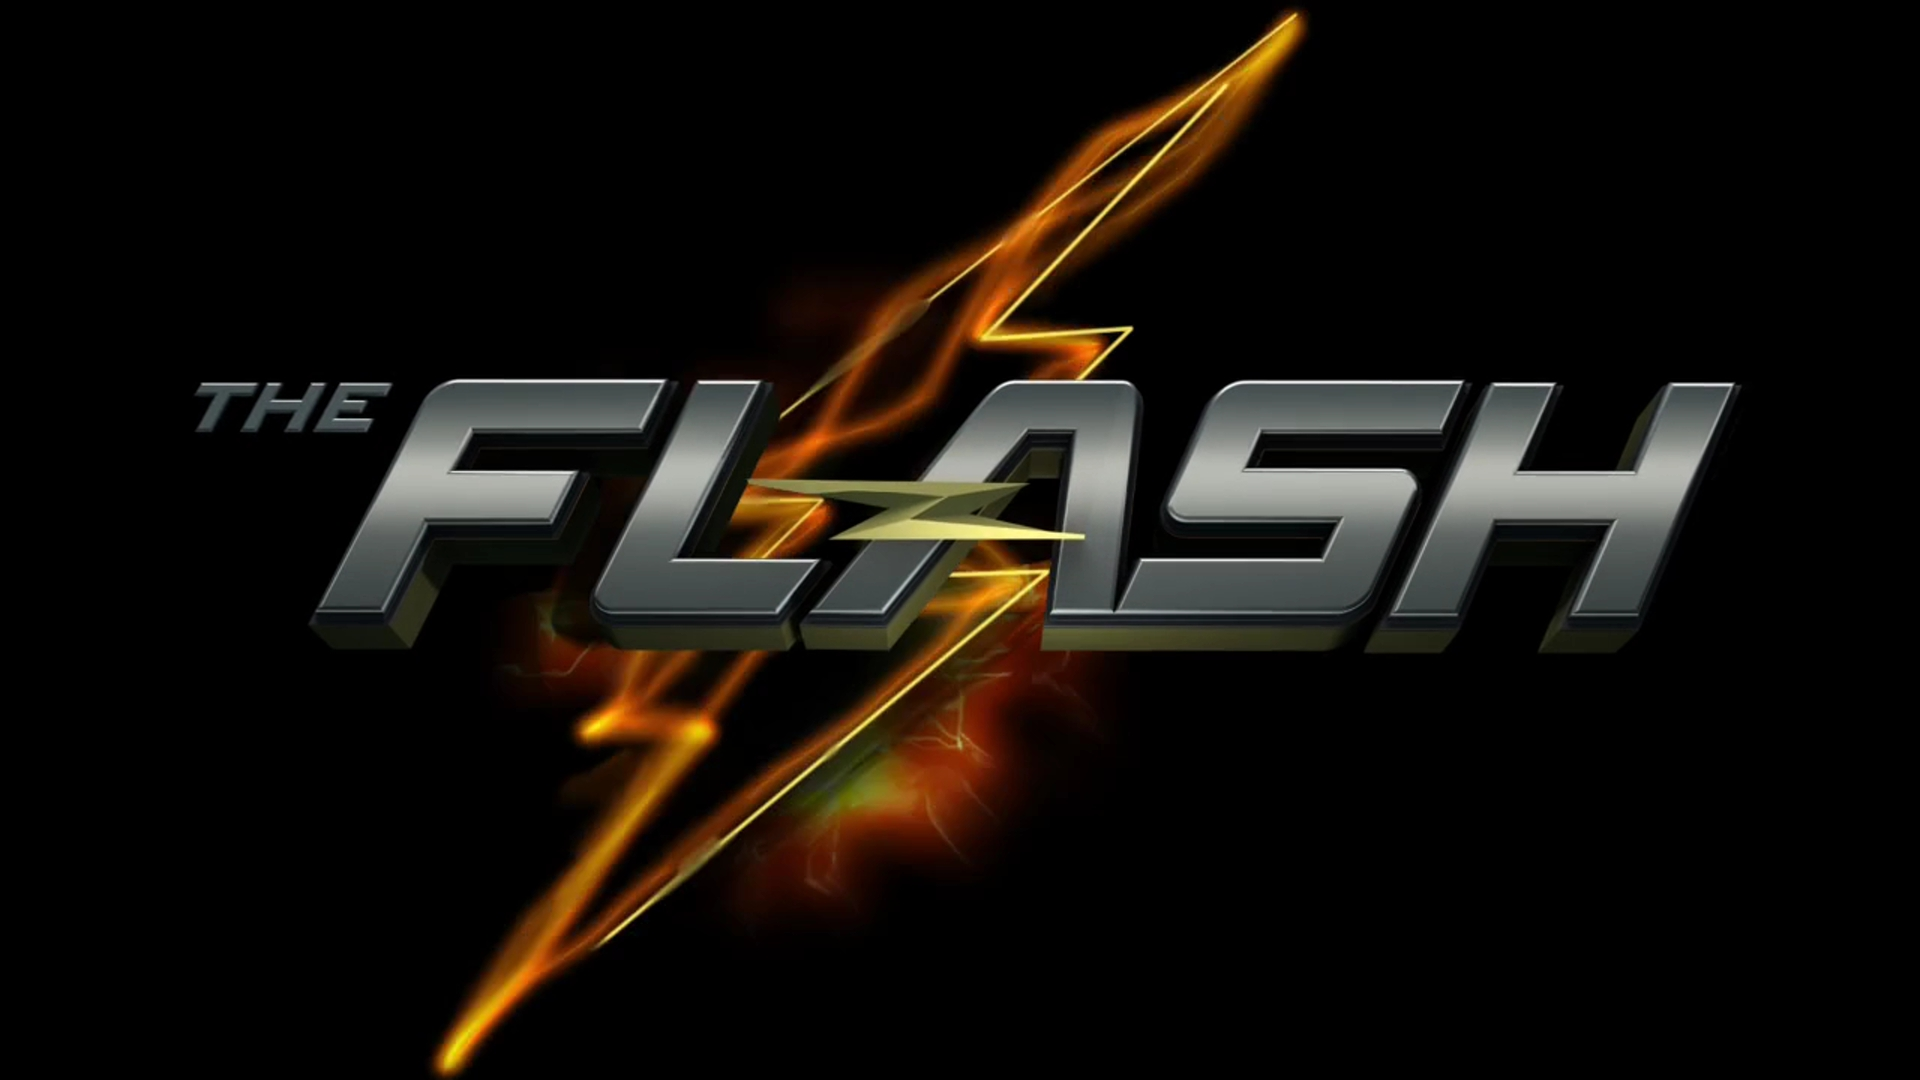 The Flash Wallpapers, Flash Fondos De Pantalla Hd